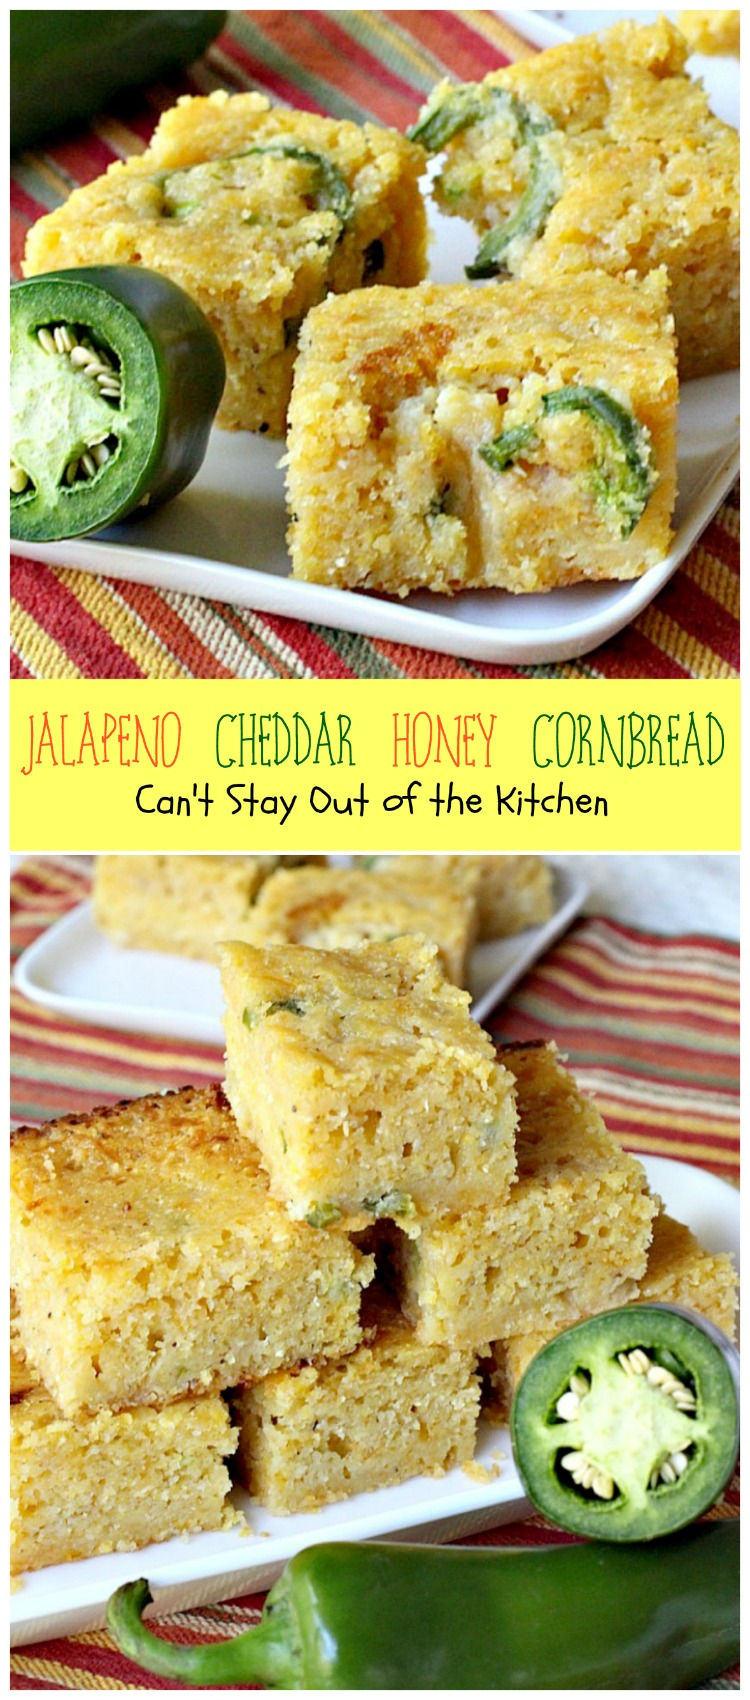 Jalapeno Cheddar Honey Cornbread | Can't Stay Out of the Kitchen